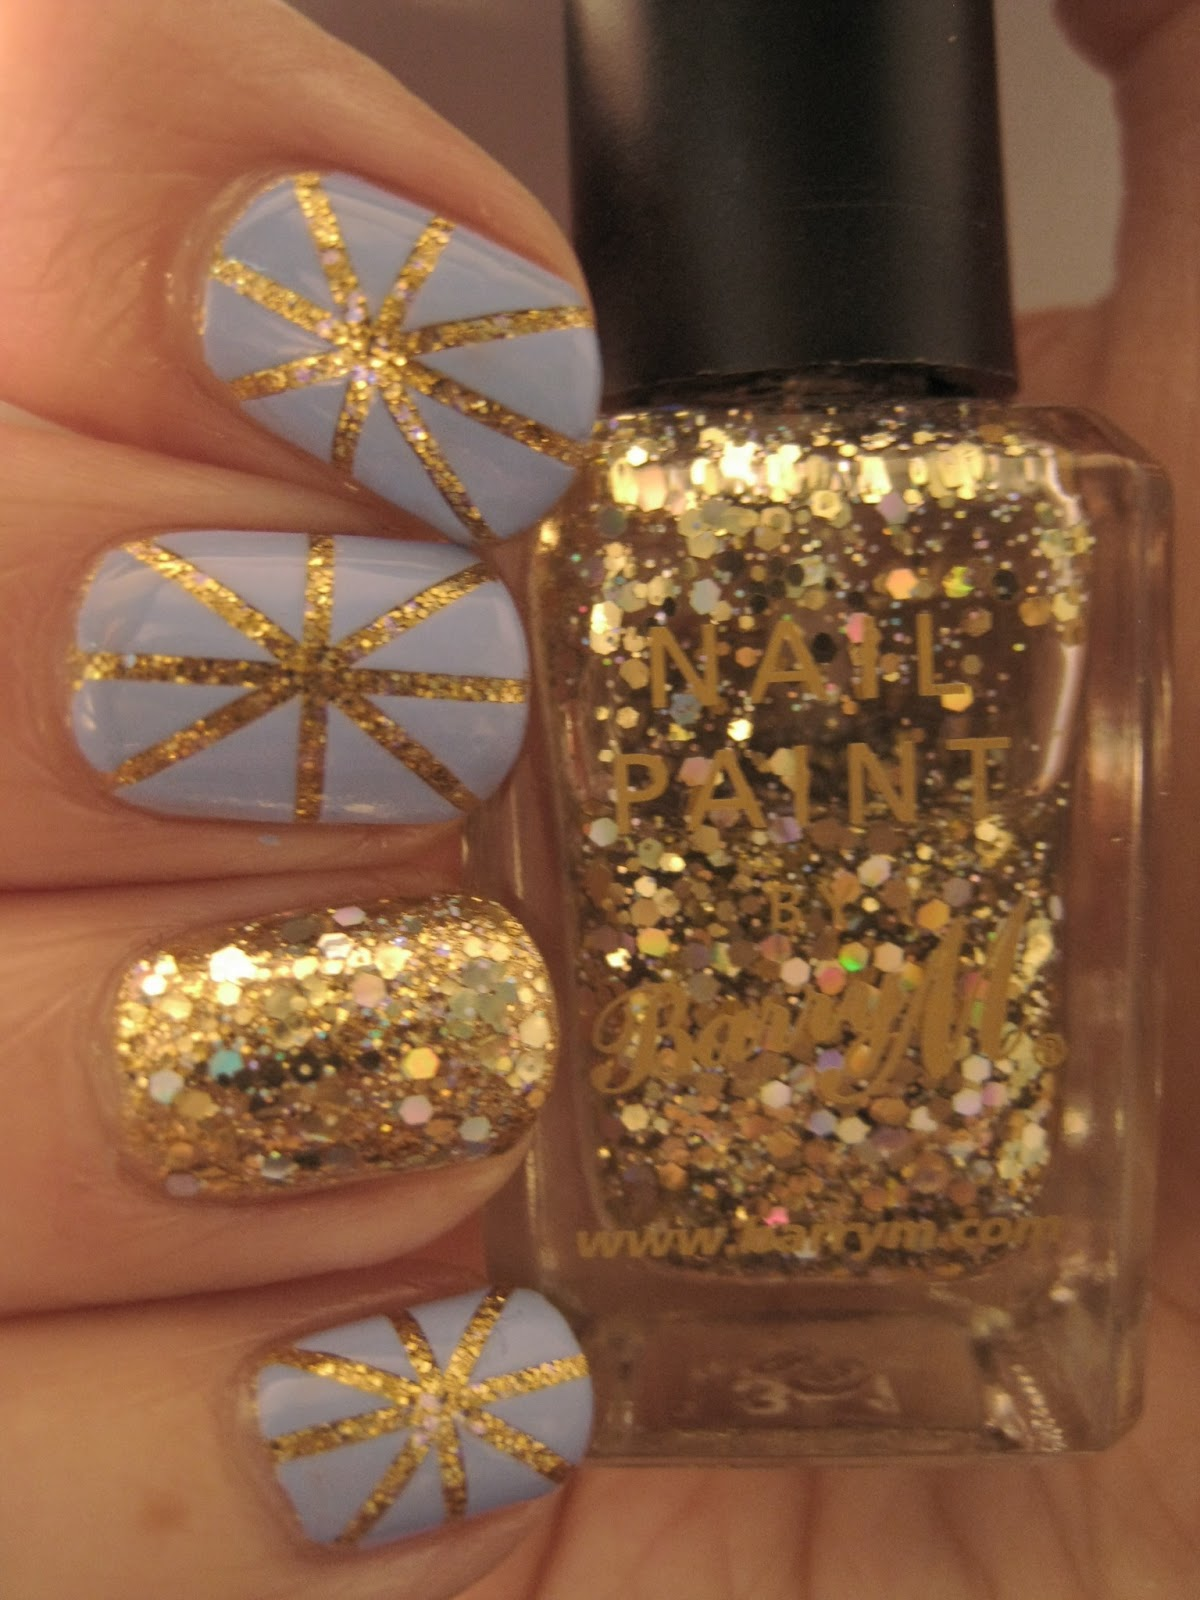 Naily perfect: Gold glitter and blue tape mani